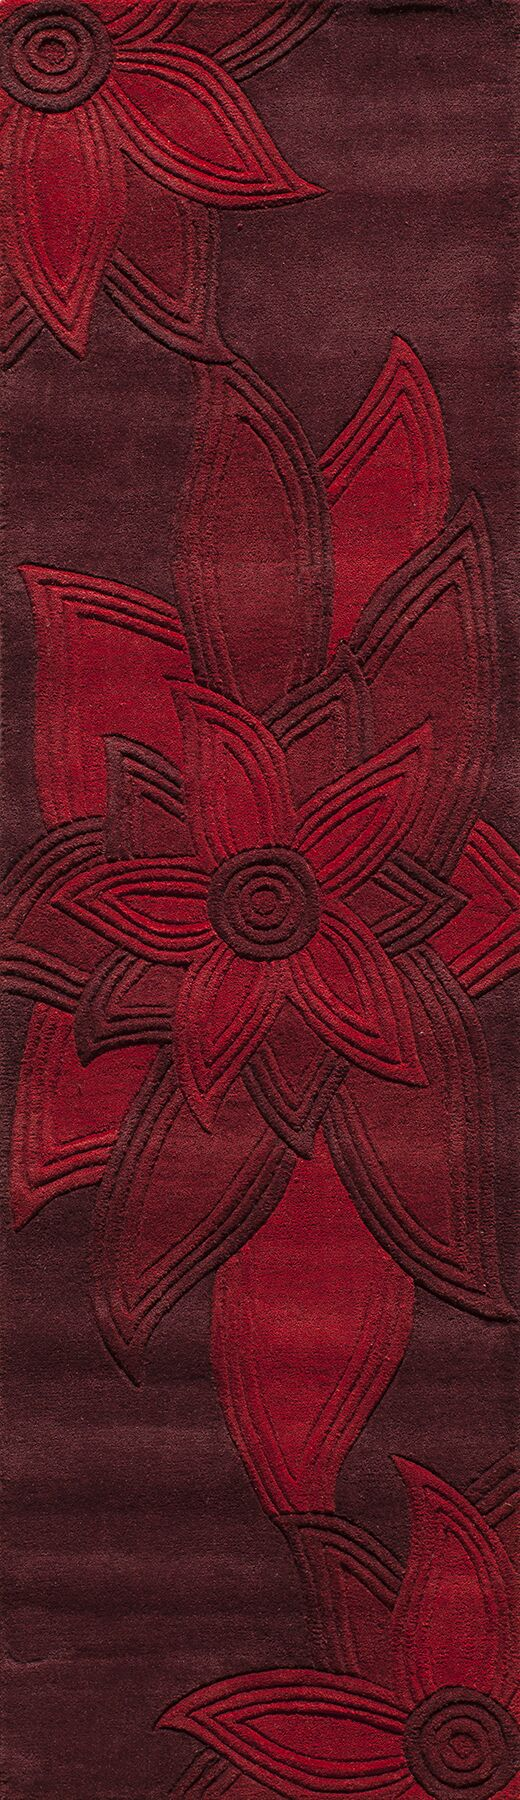 Robin Hand-Tufted Red Area Rug Rug Size: Rectangle 8' x 10'